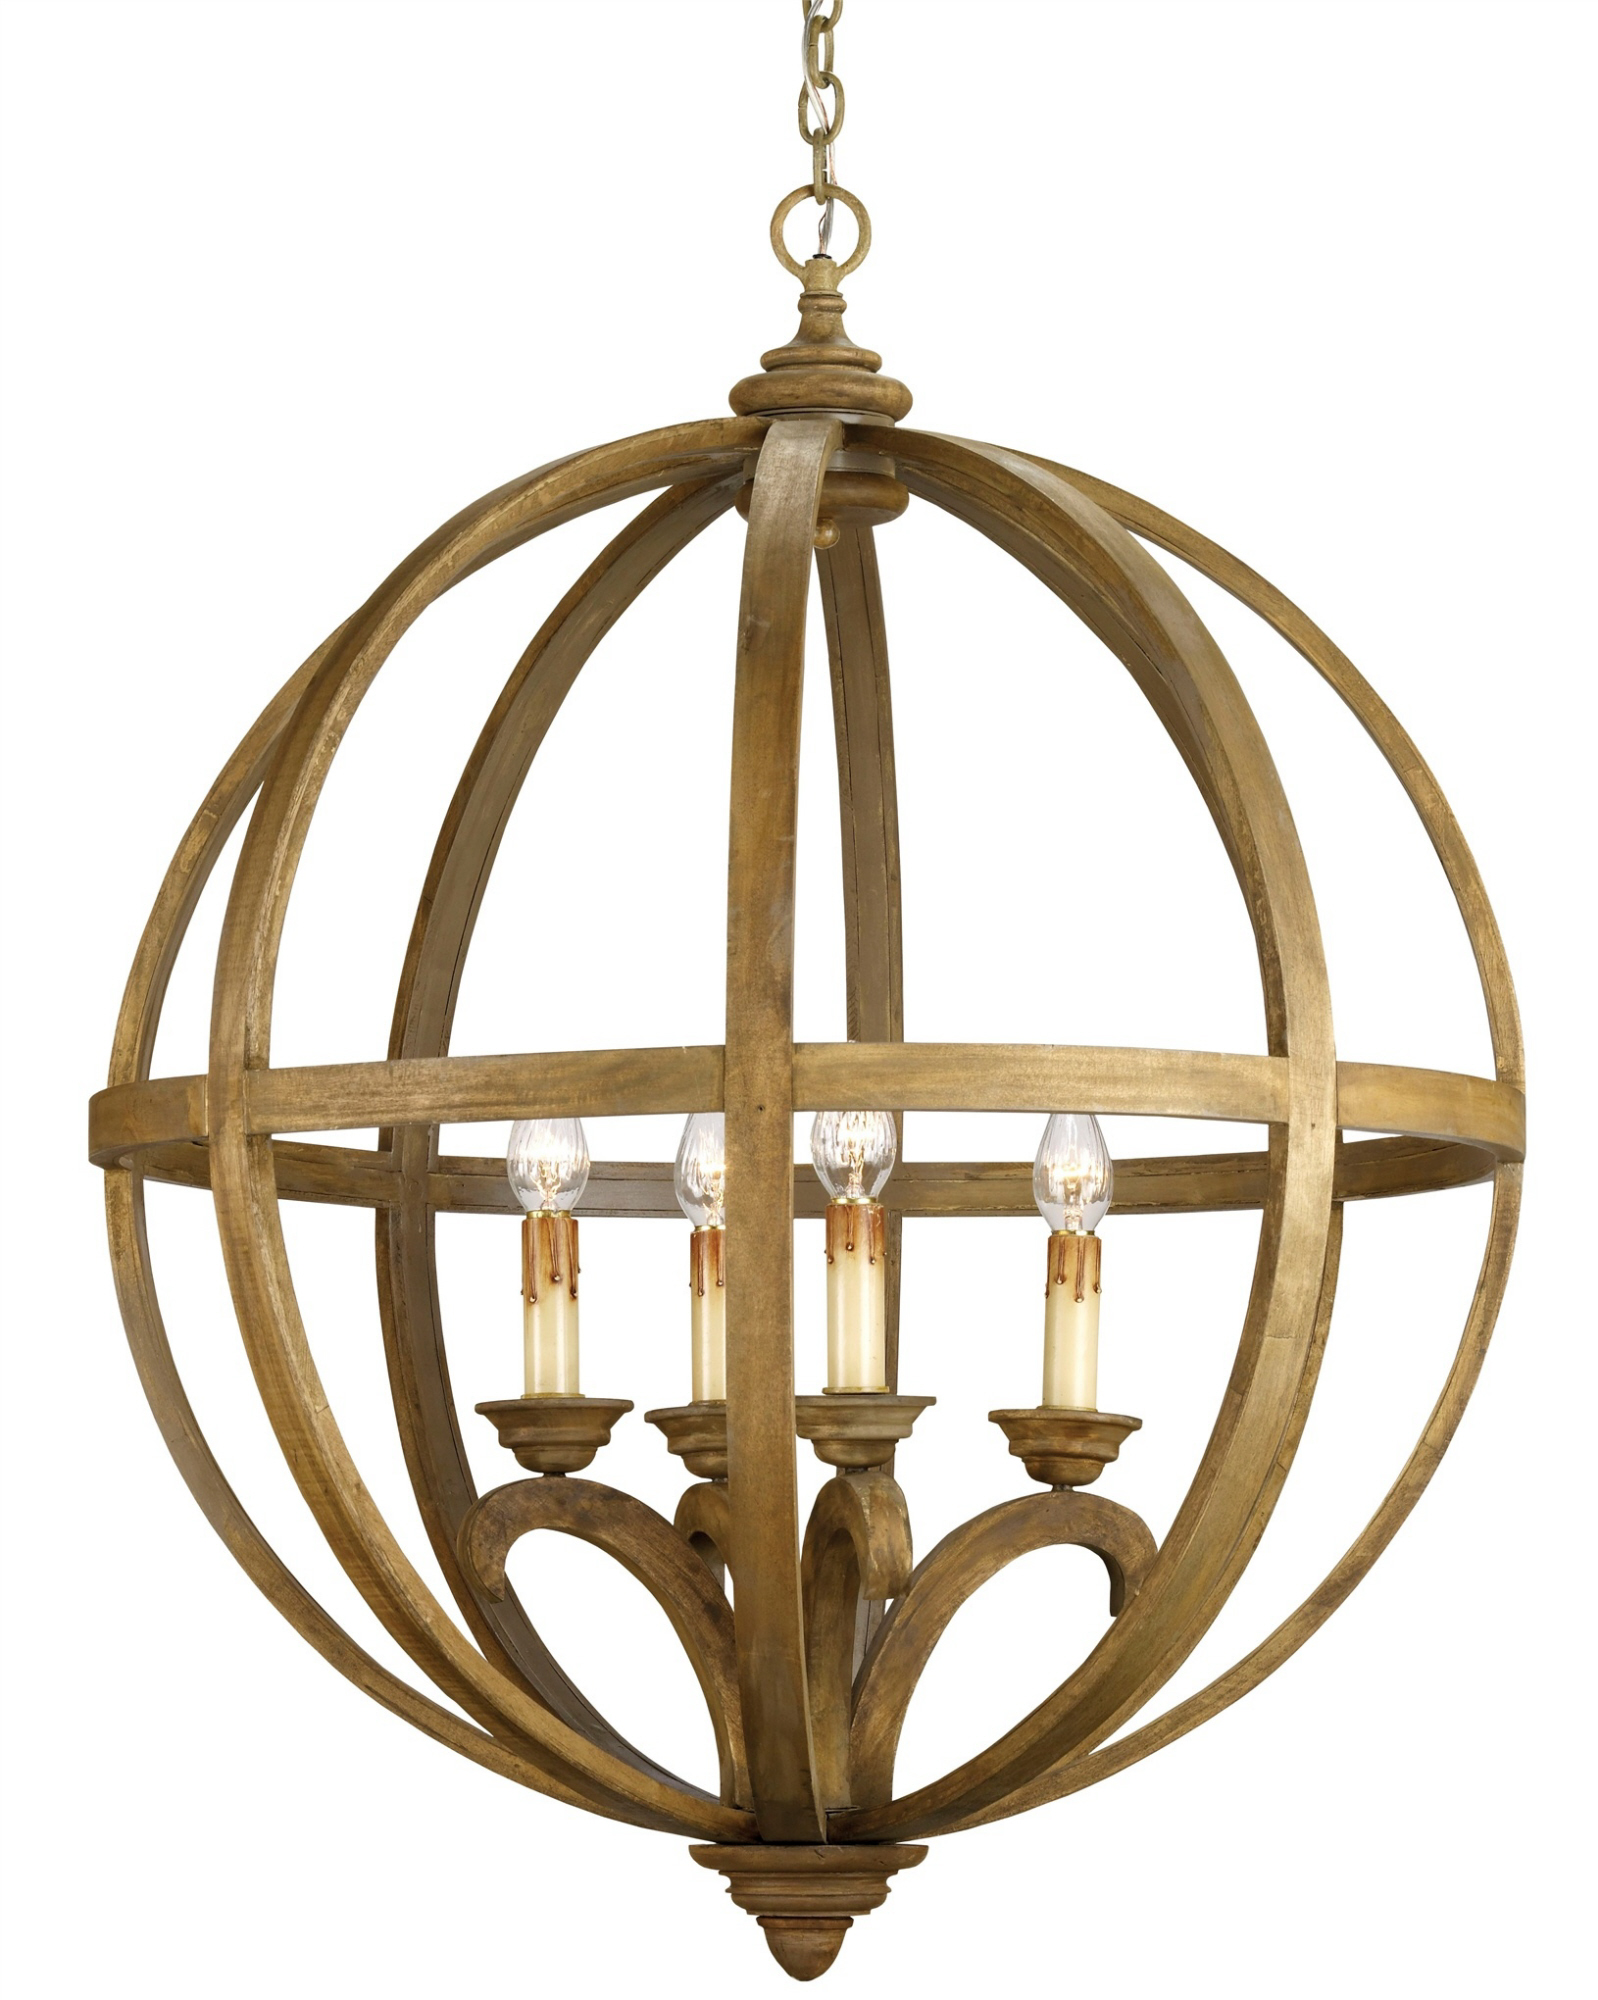 Home Decor Admirable Light Sphere Chandelier With Metal Design